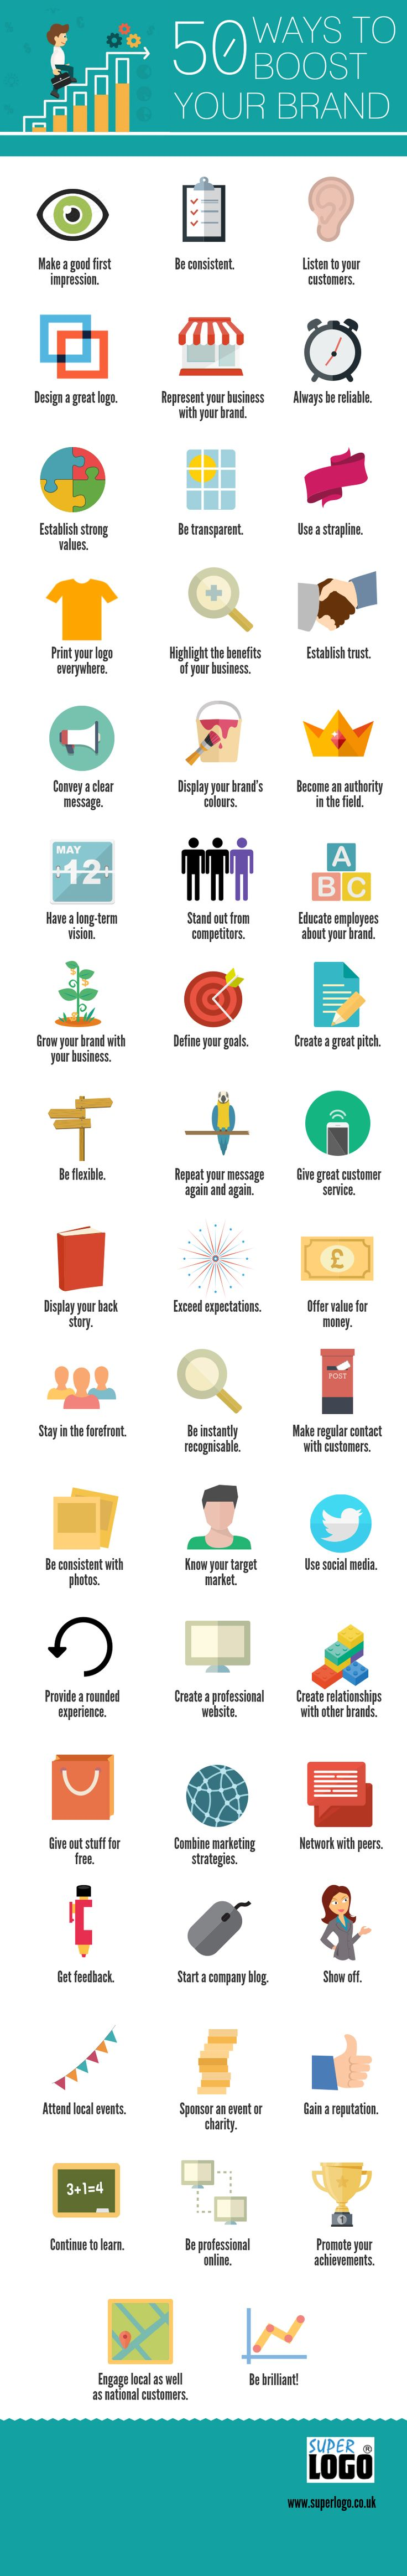 50-ways-to-increase-brand-awareness